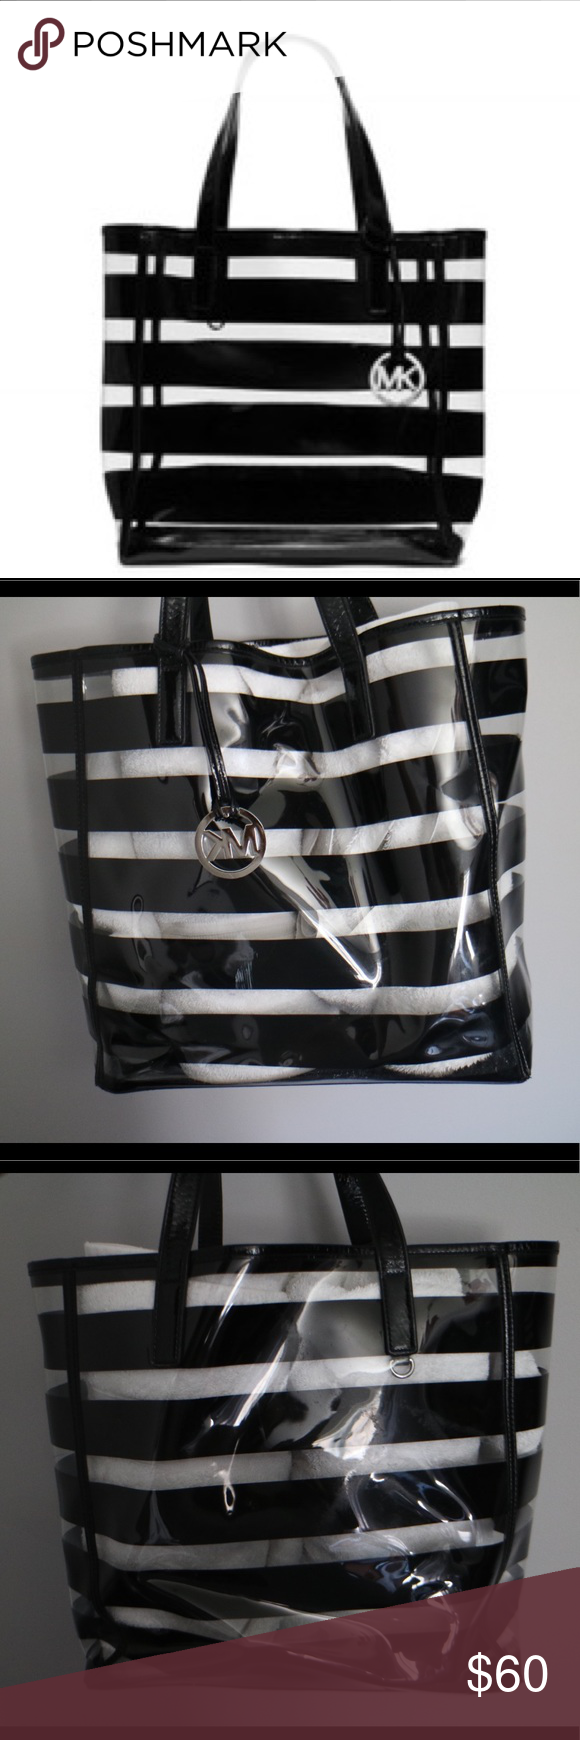 3b099ccc890c Michael Kors Eliza Clear Tote Beach Bag Lightly used, small scrape in front  bottom of